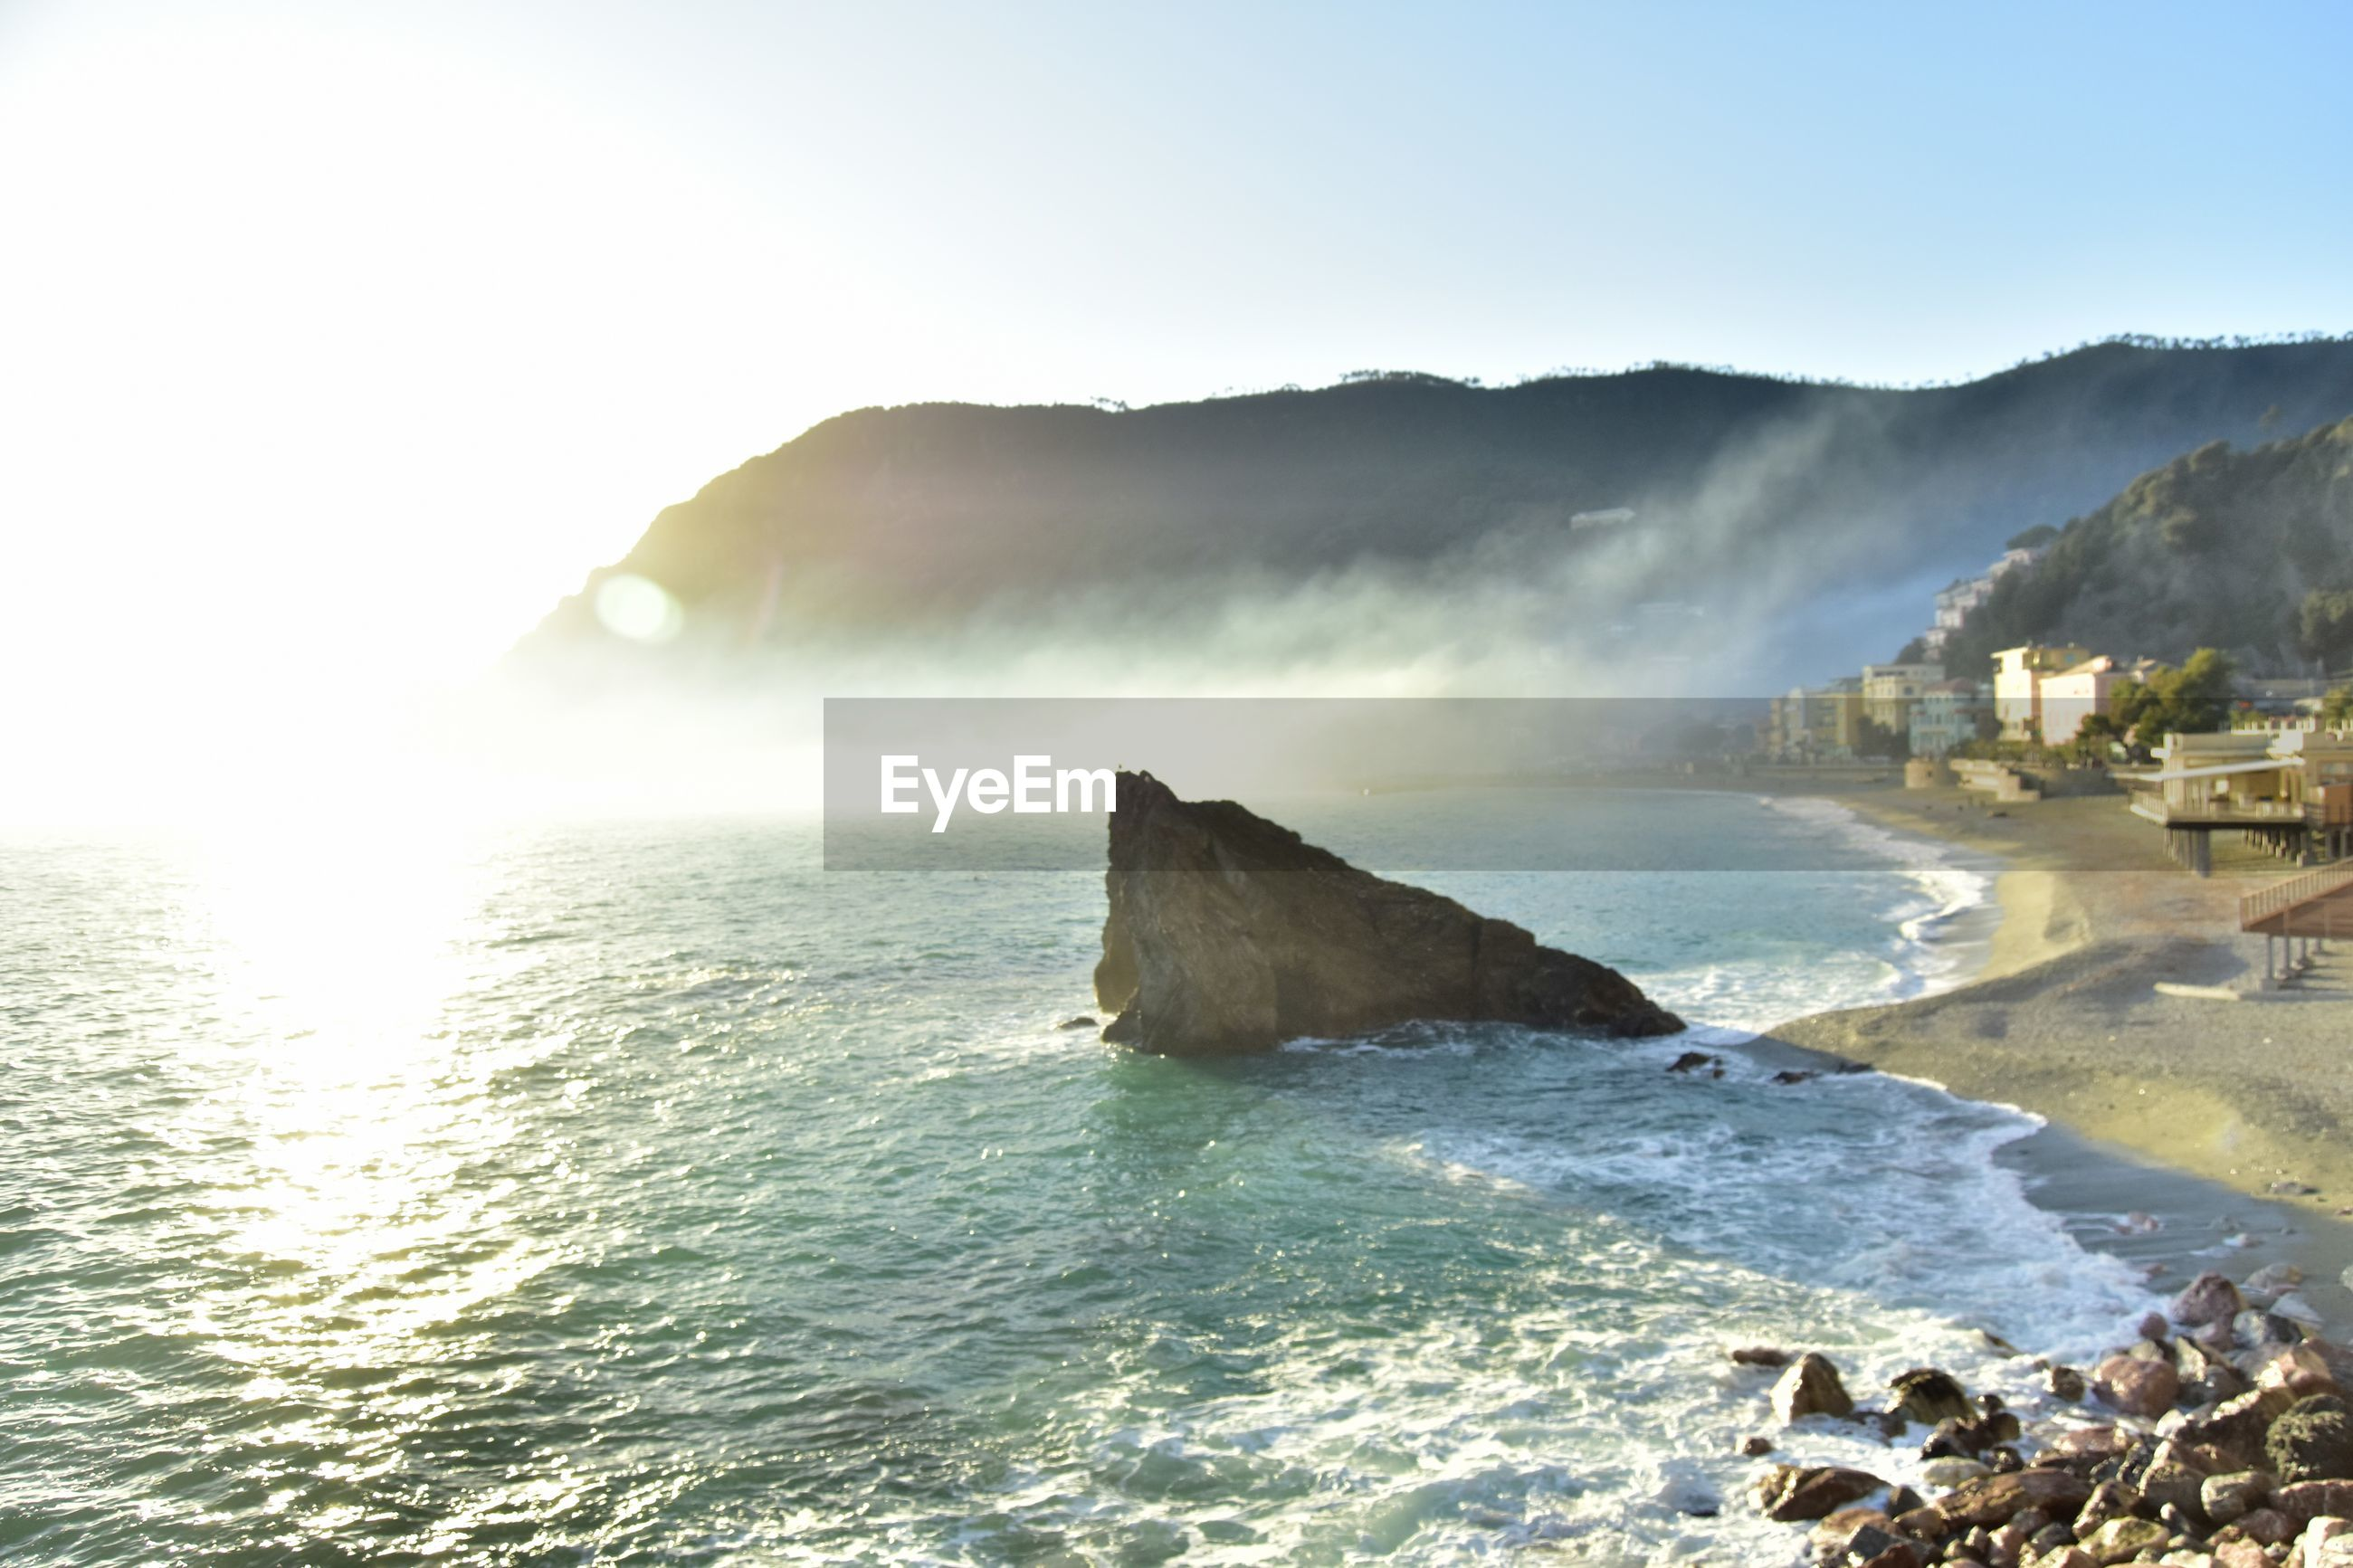 SCENIC VIEW OF SEA AND ROCKS